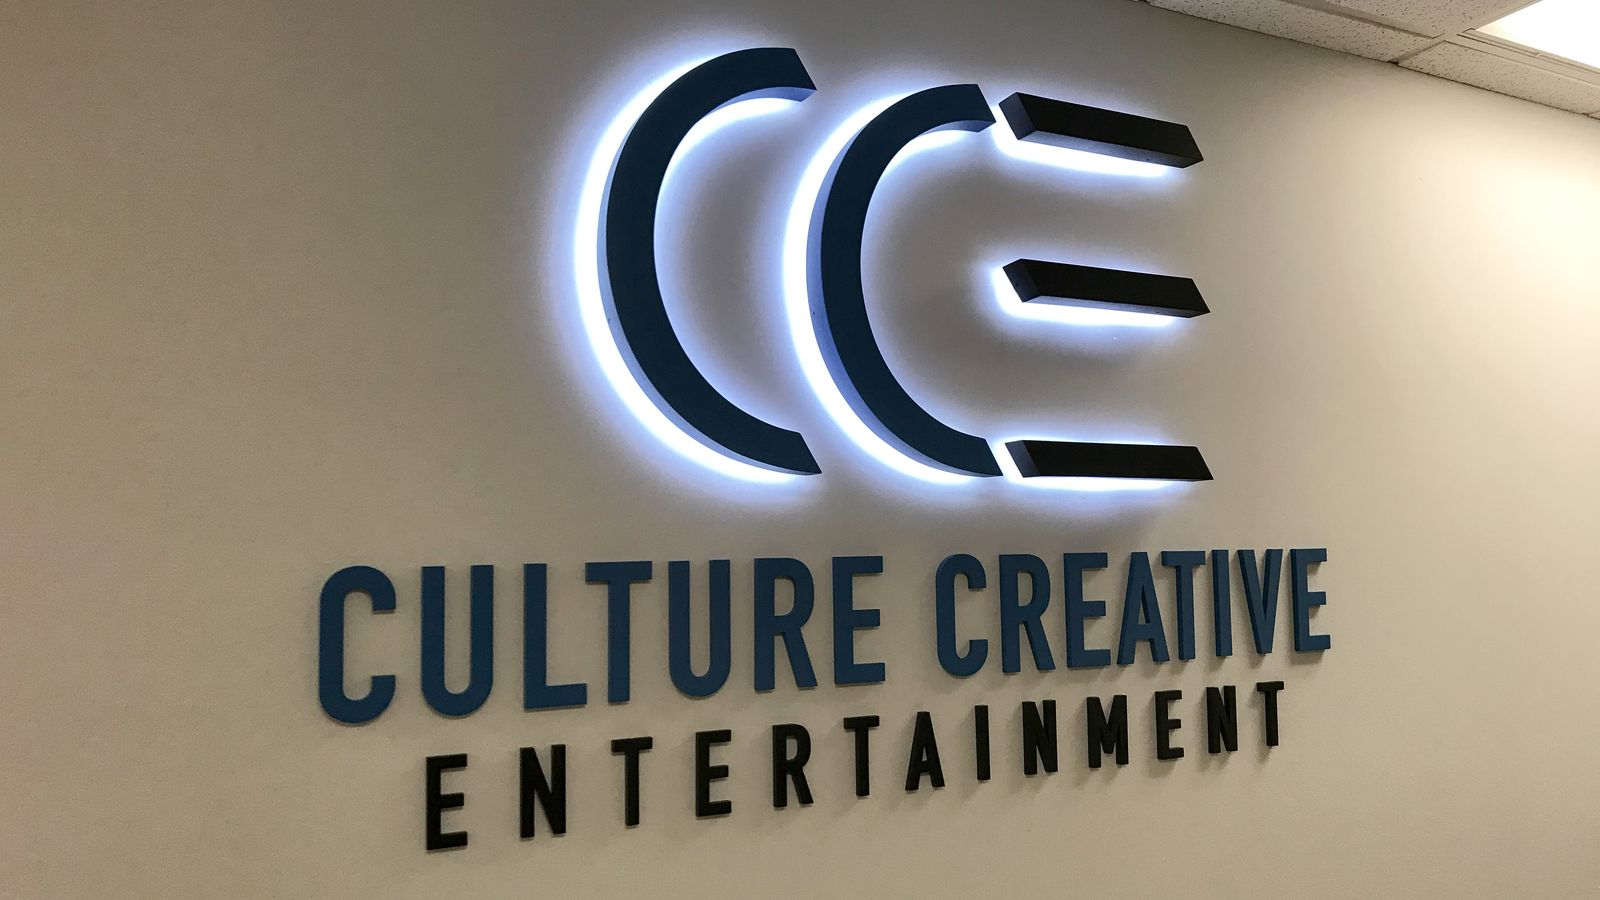 CCE office 3d letters